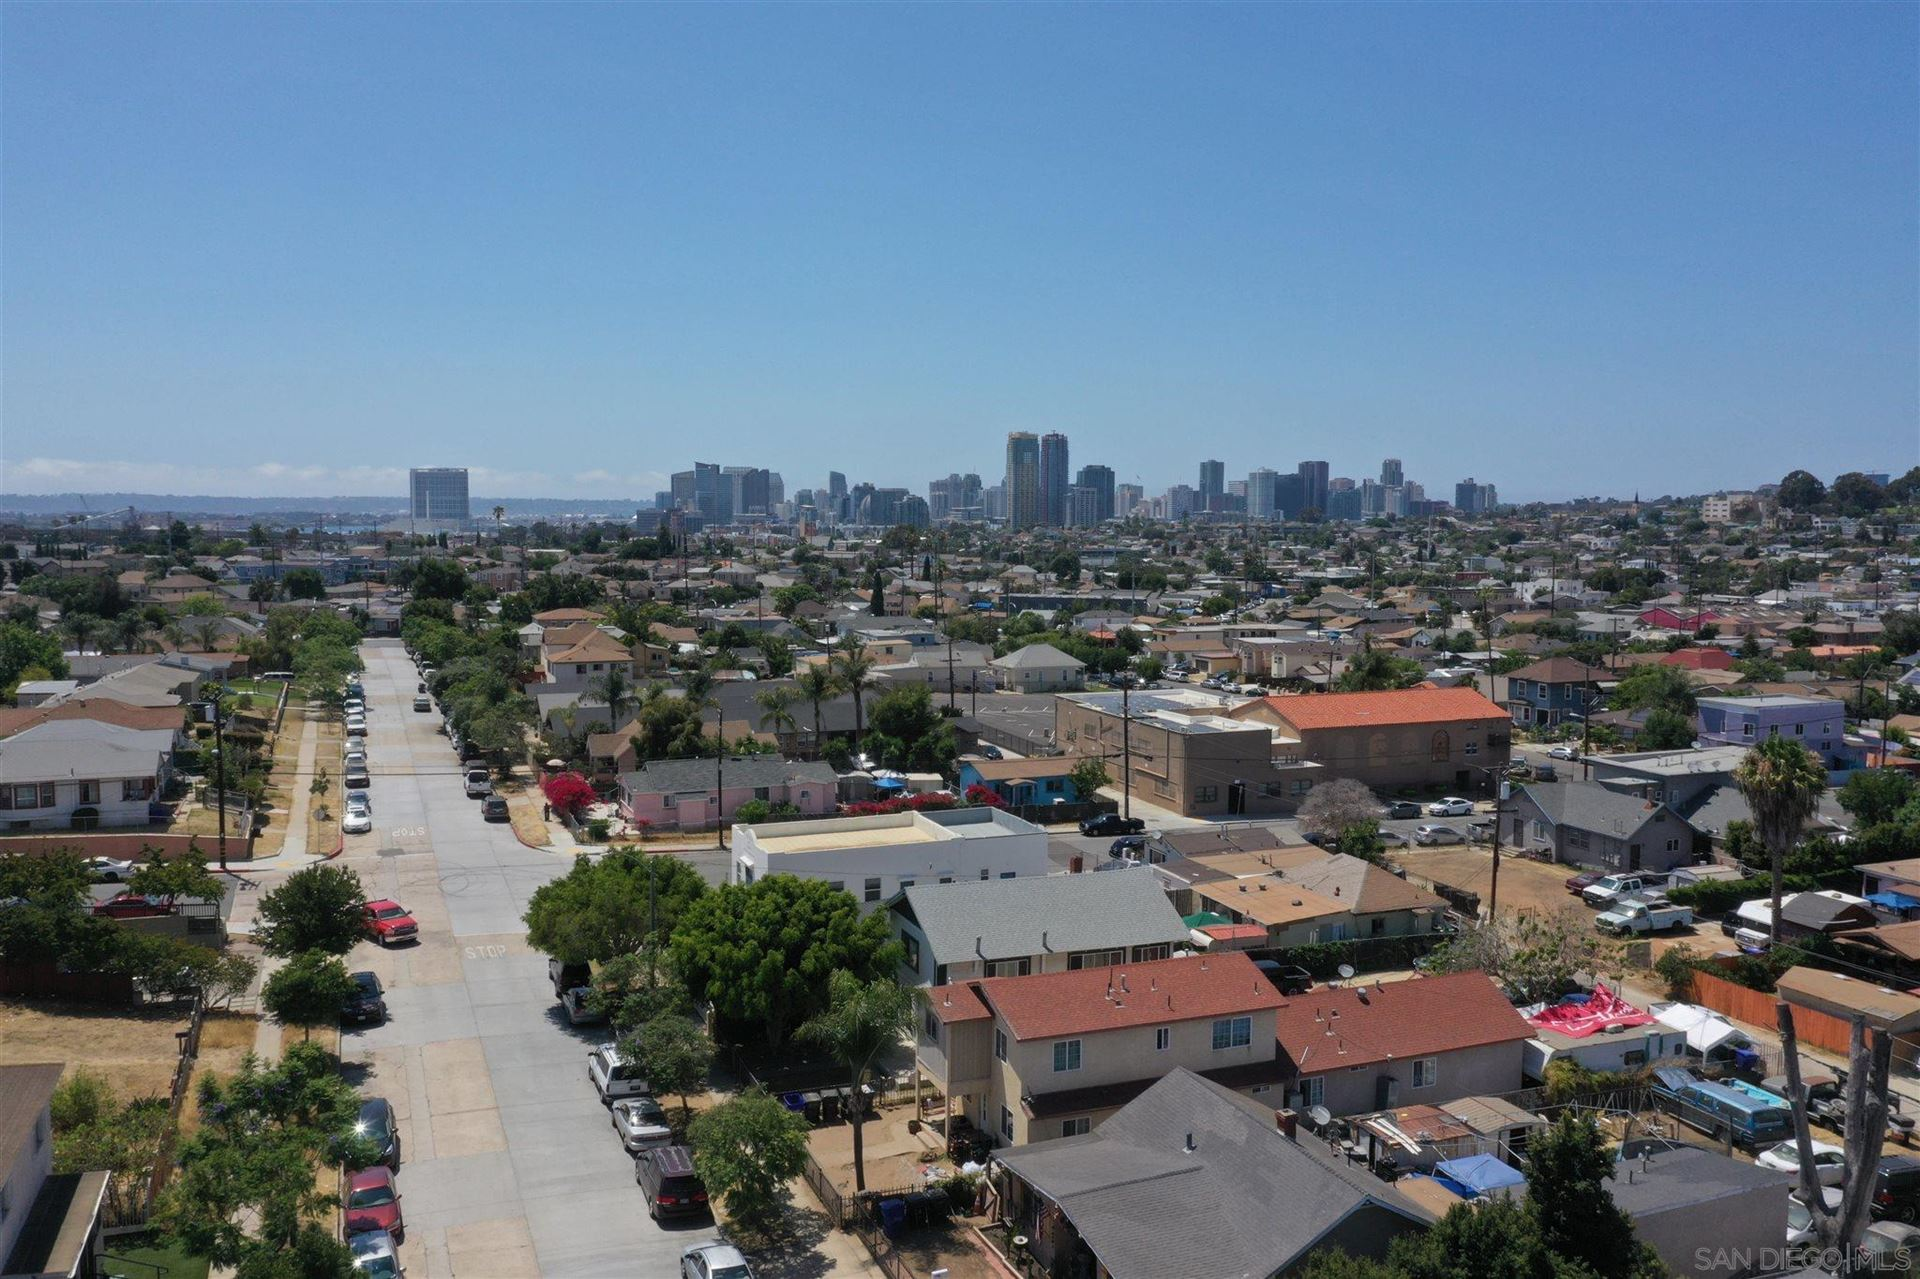 Photo of 2948-50 Franklin Ave, San Diego, CA 92113 (MLS # 210021057)